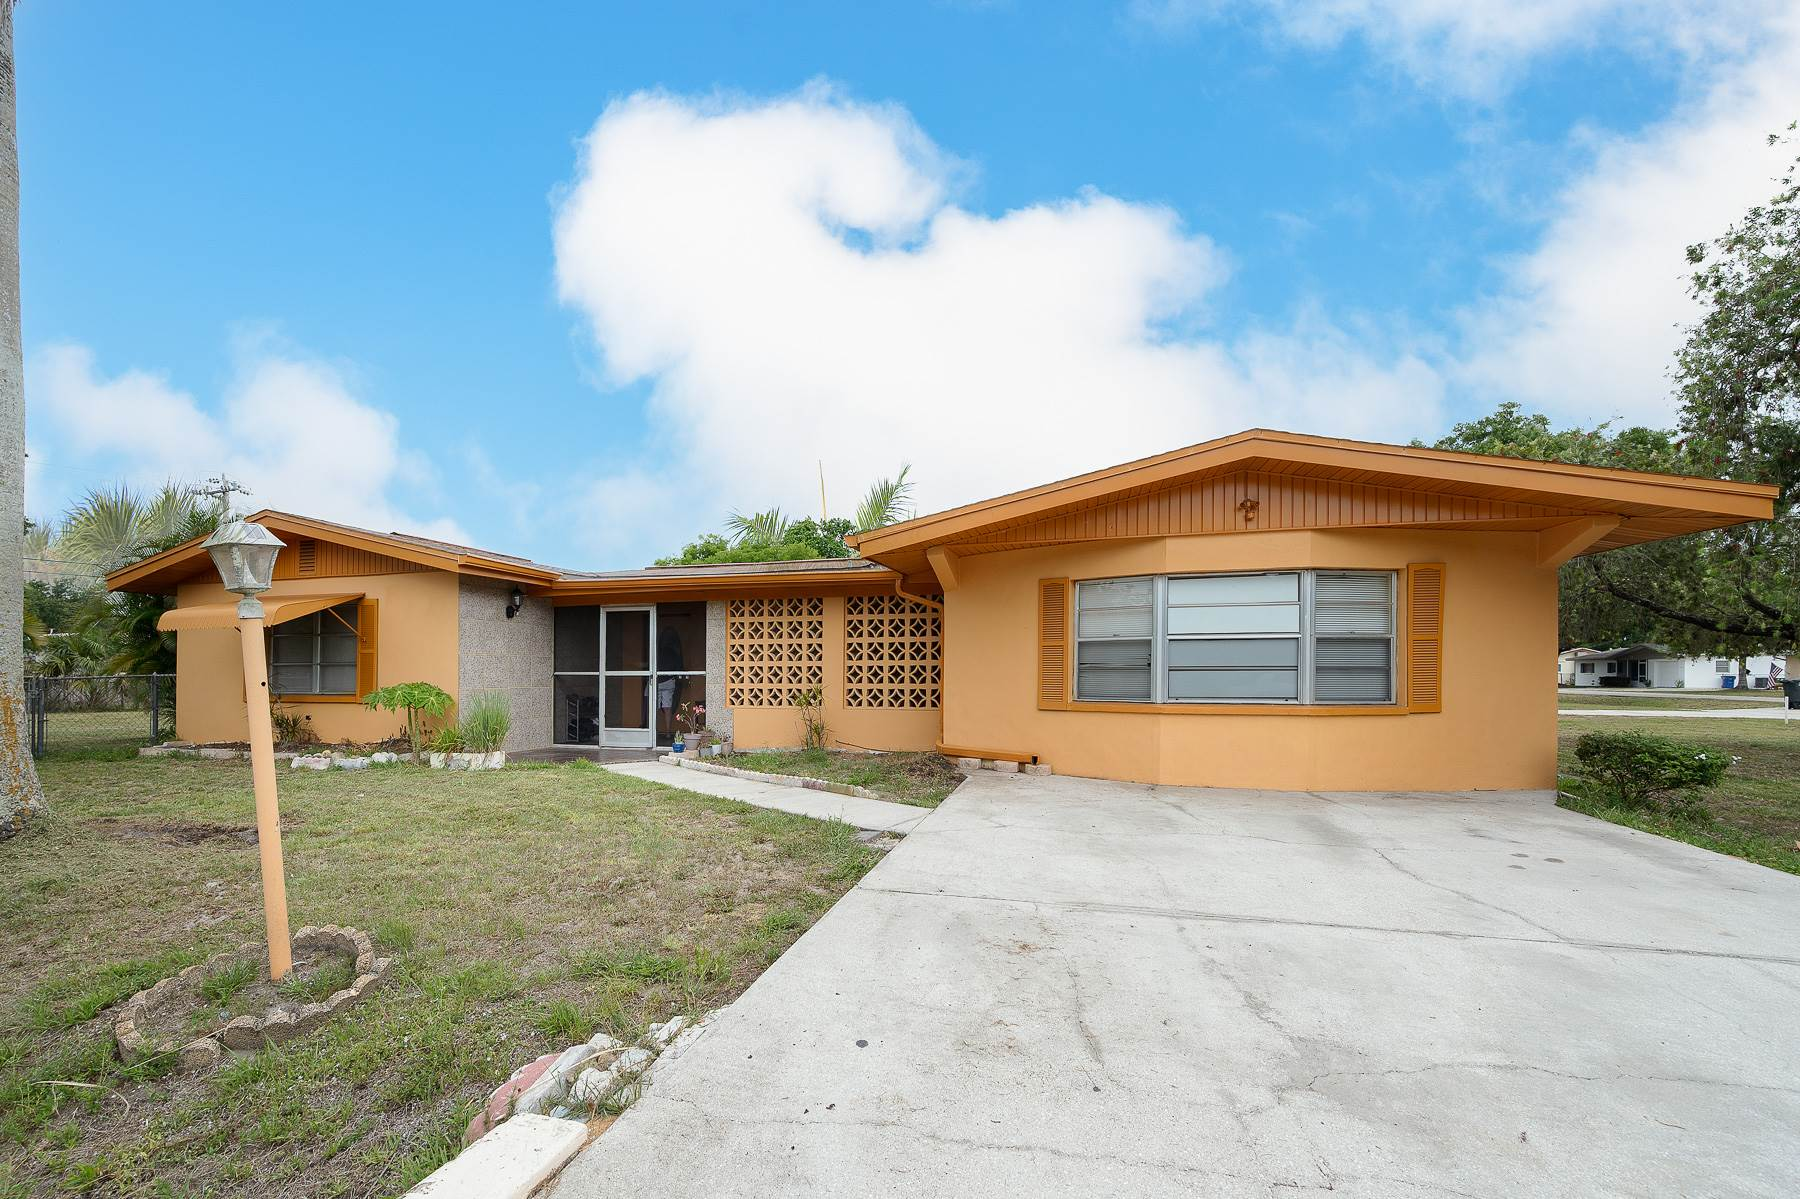 30 Mariana Ave., N. Fort Myers, FL 33917